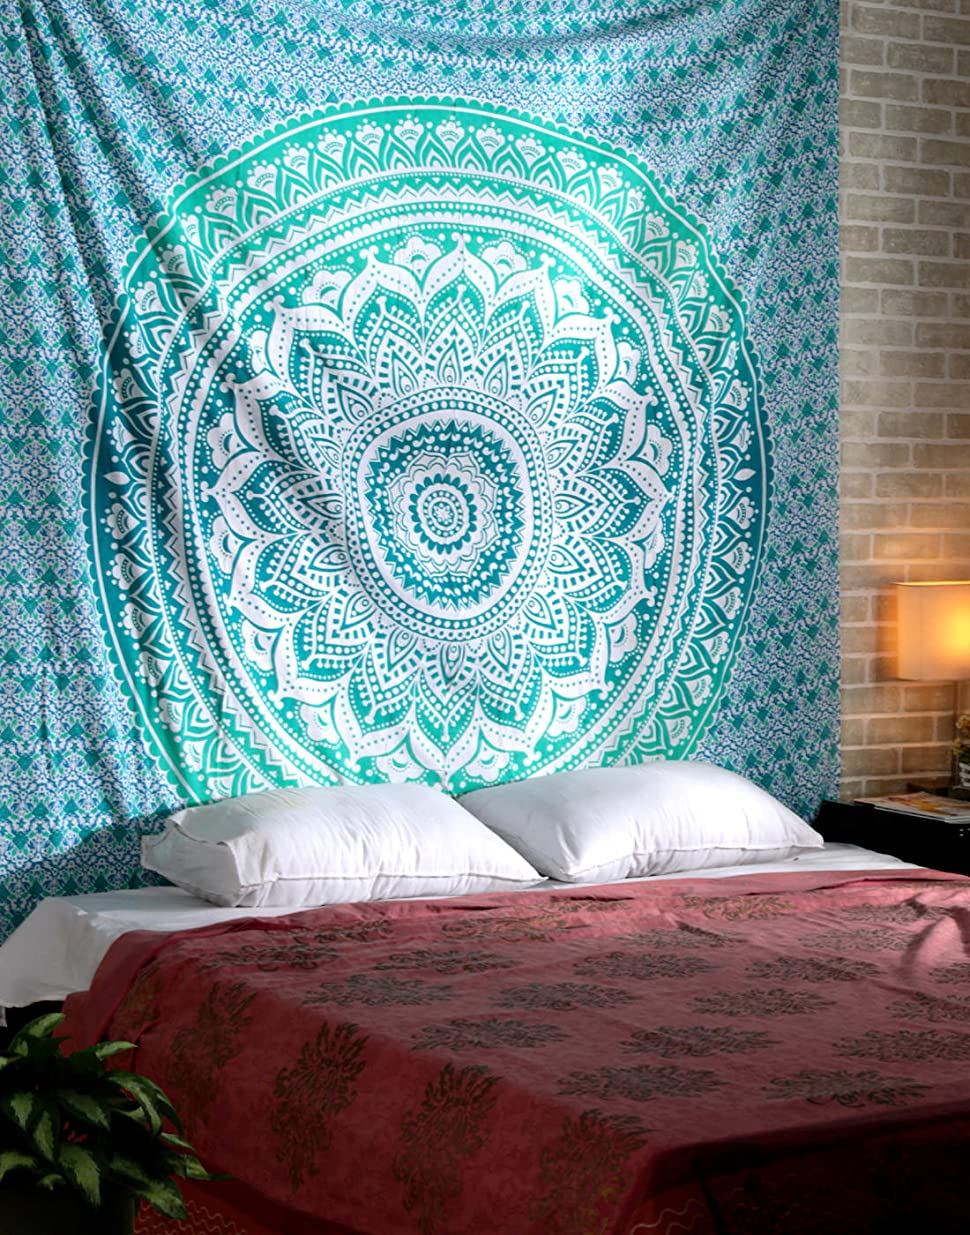 rajrang turquoise mandala large tapestry hippie boho bohemian indian wall hanging - Bedroom Tapestry